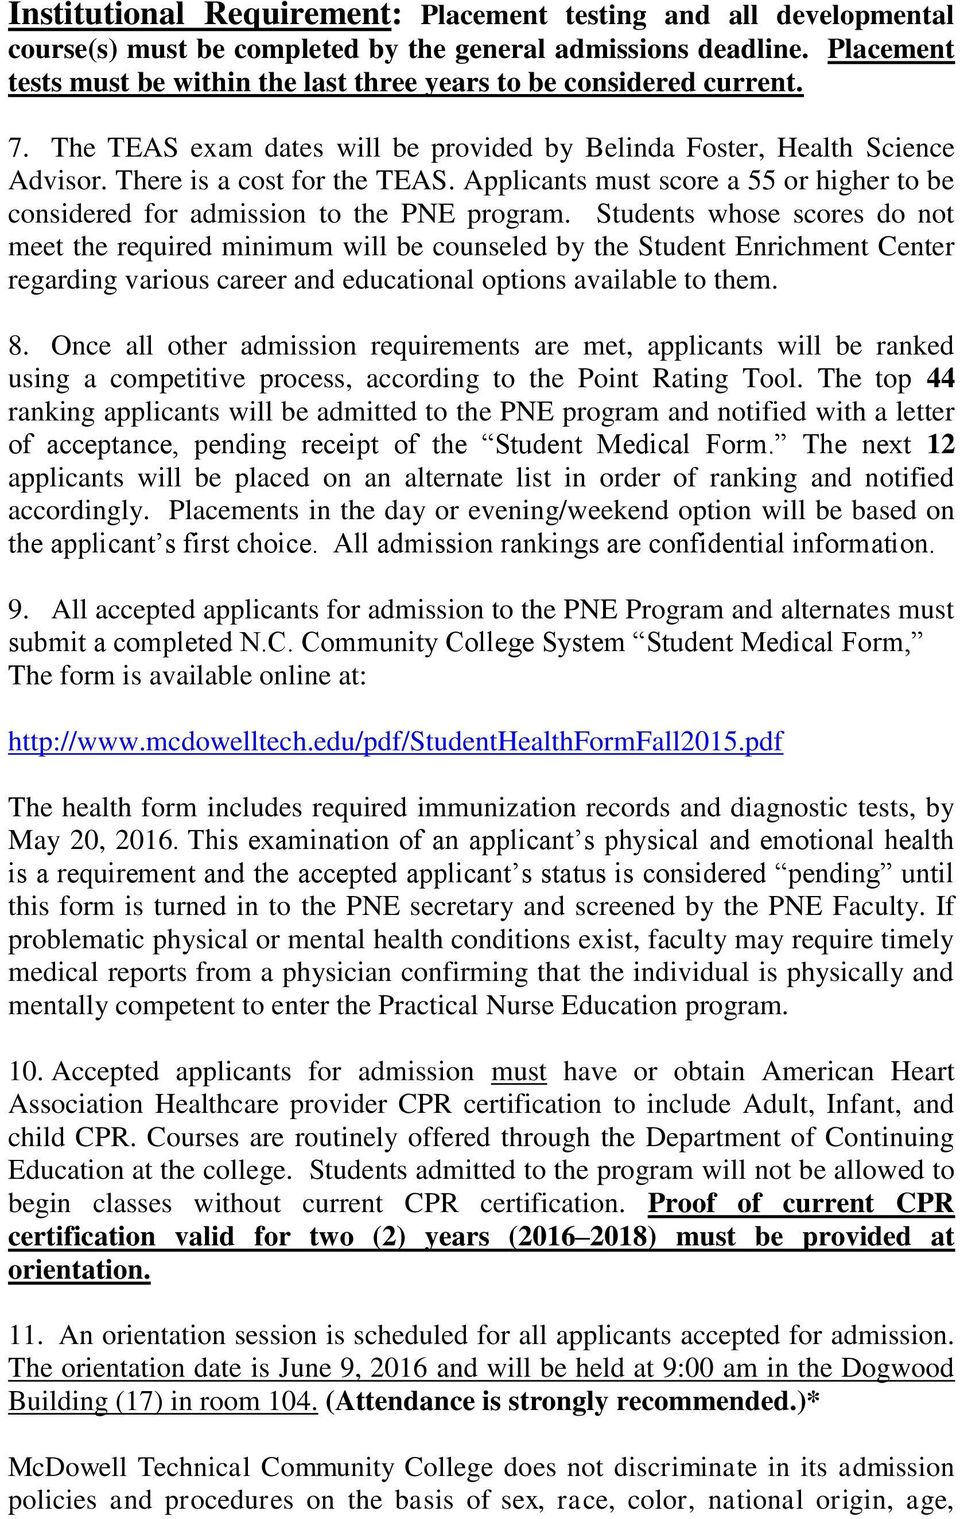 Applicants must score a 55 or higher to be considered for admission to the PNE program.